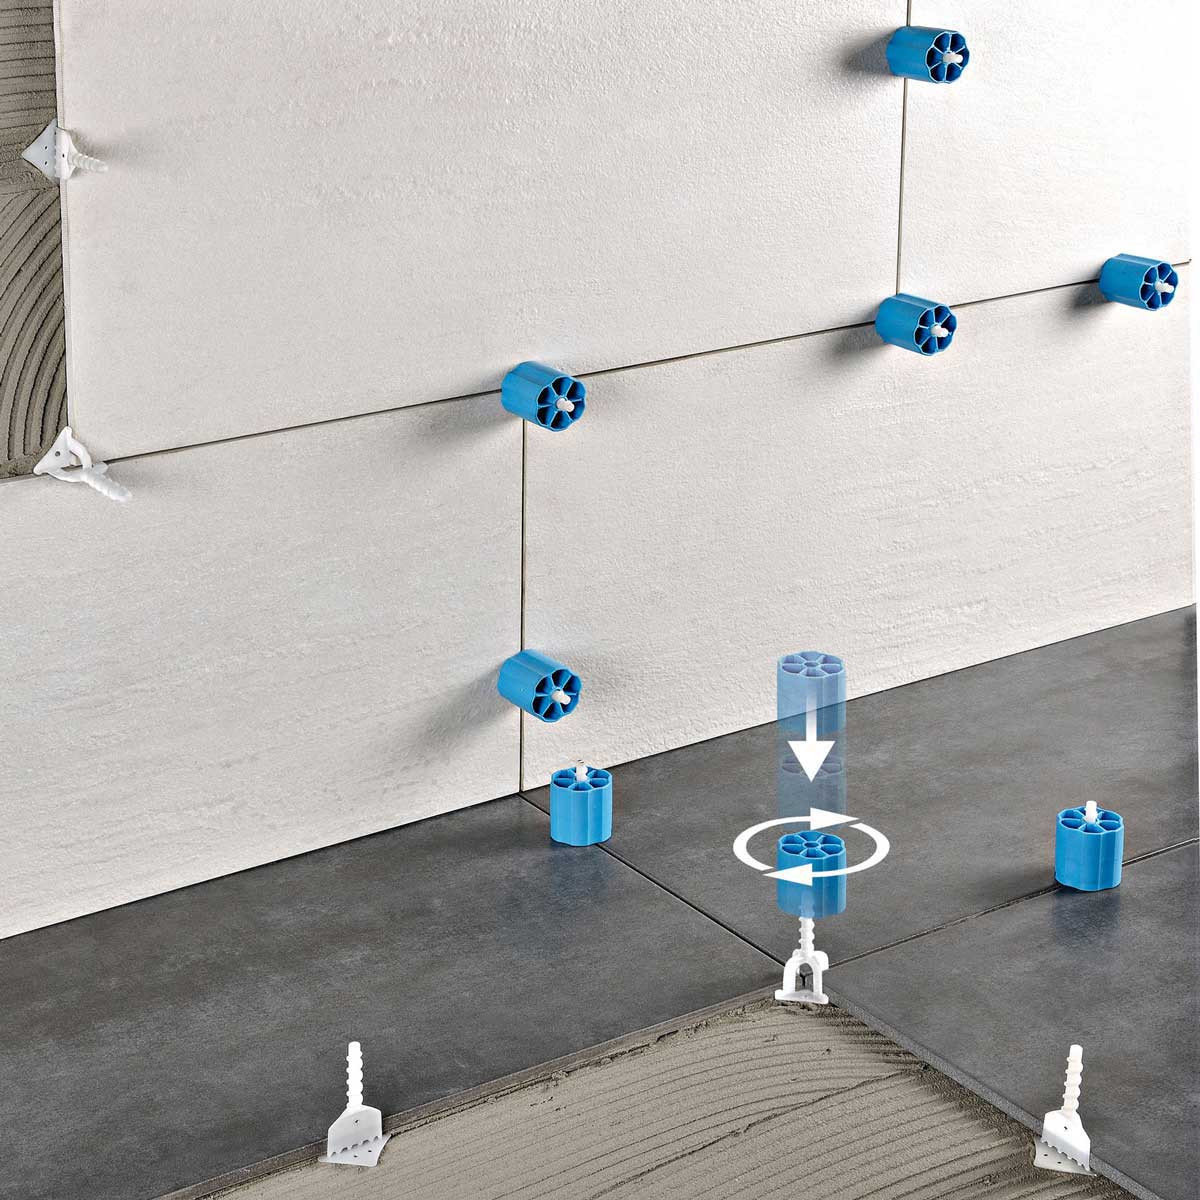 Prodeso Leveling caps screw in to clip to level tile